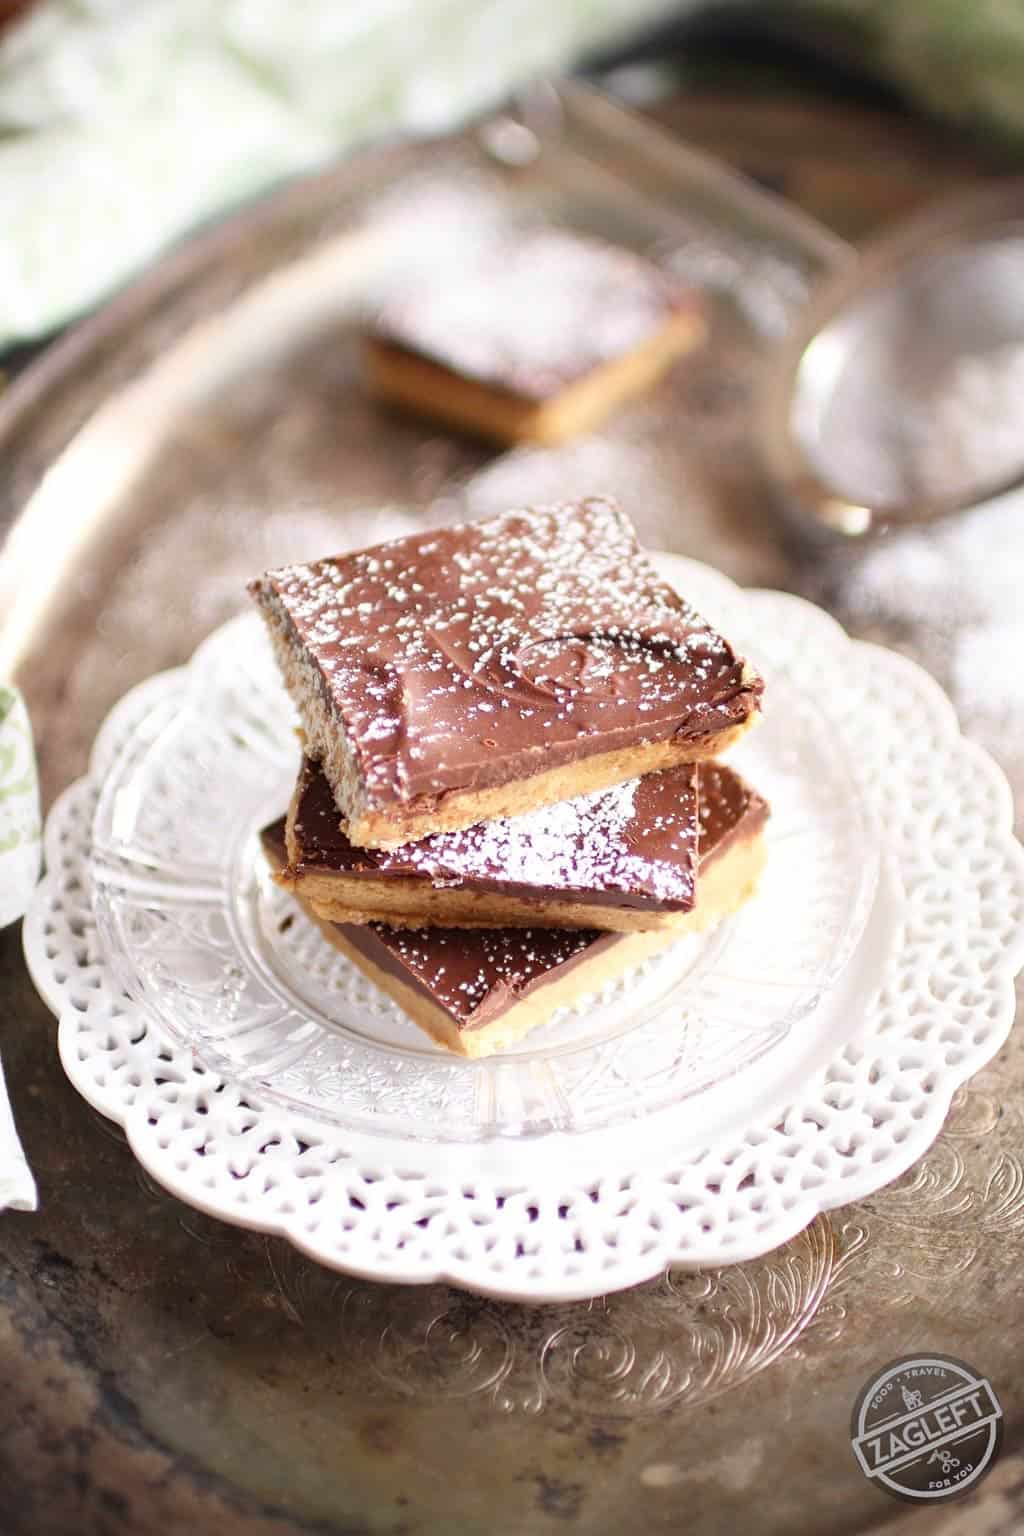 A stack of three No Bake Chocolate Peanut Butter Bars dusted with powdered sugar on a small plate on a metal tray